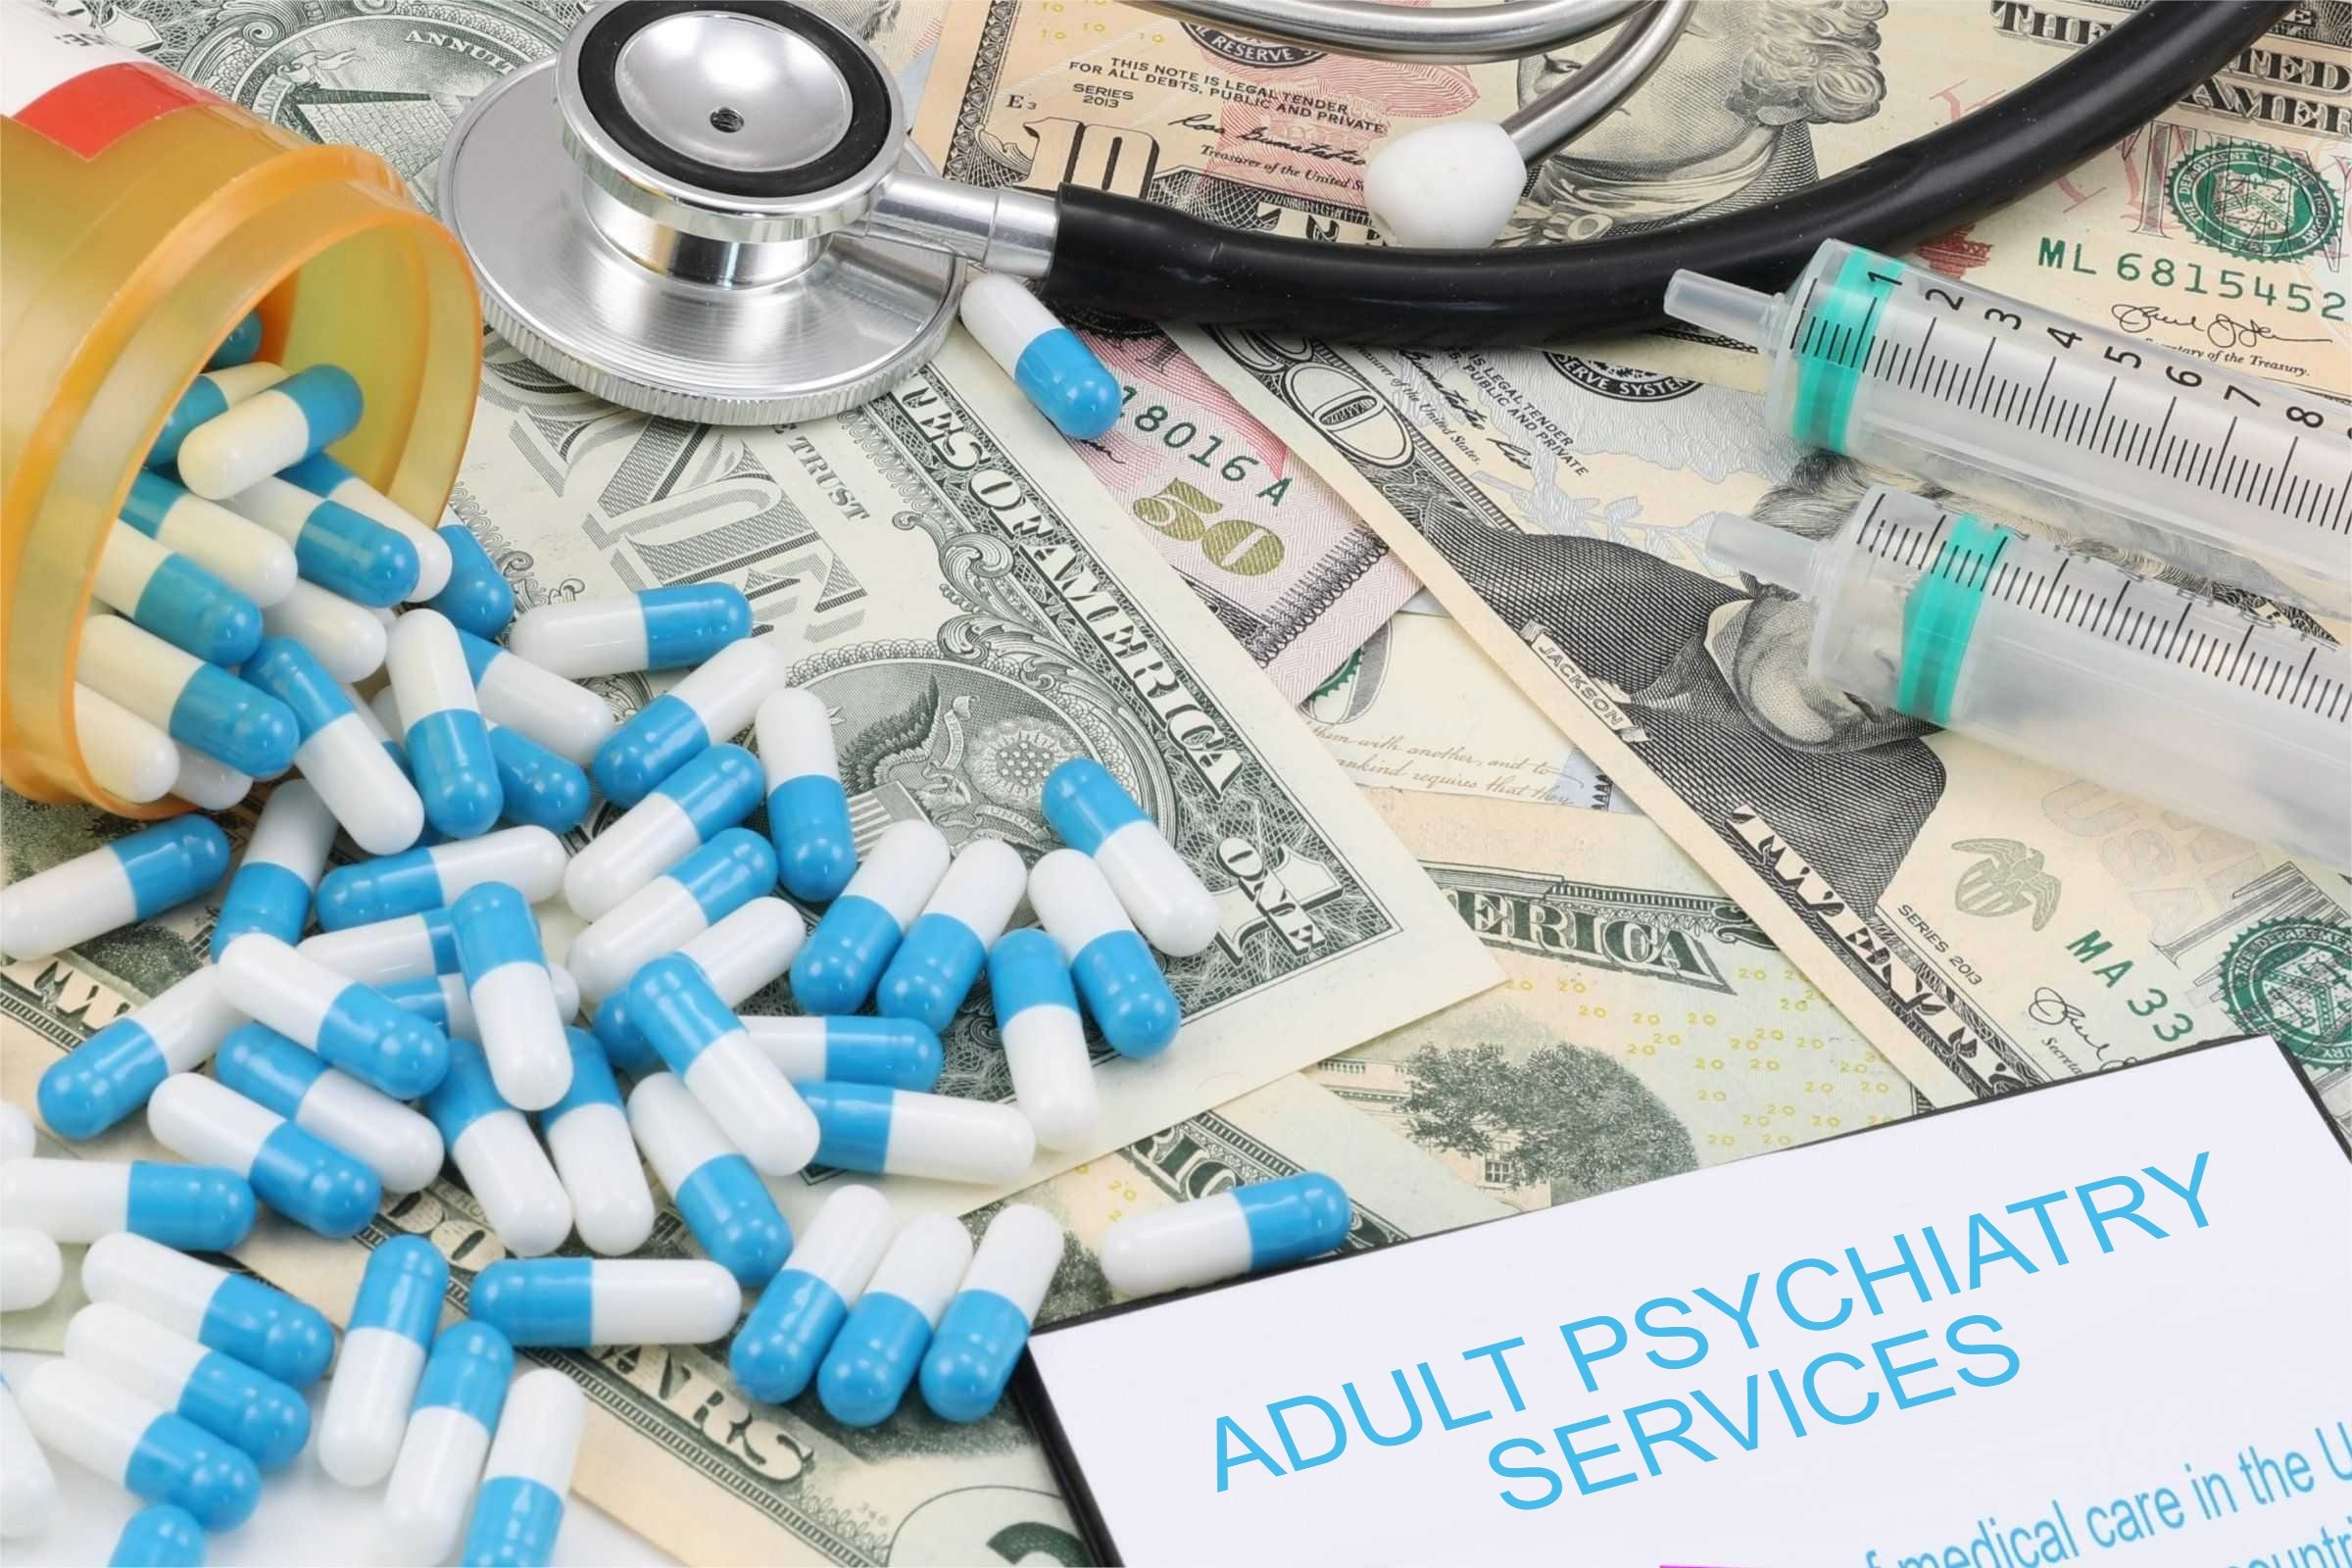 Adult Psychiatry Services